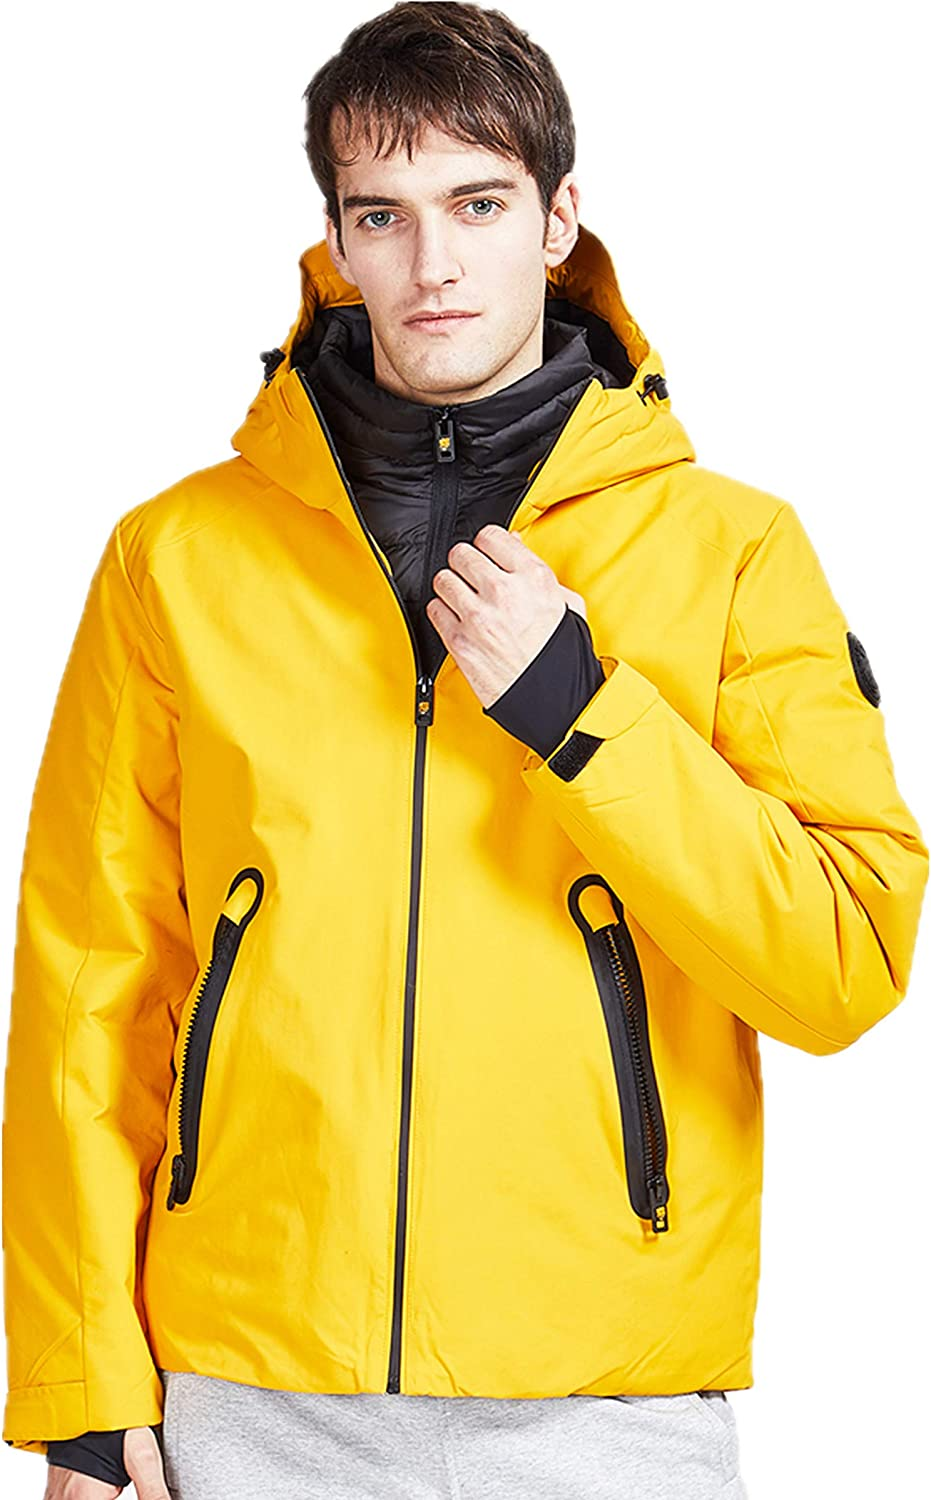 TIGER FORCE Men Winter Jackets Winter Quilted Coat Rain Jacket Waterproof Outdoor Camping Travel at  Men's Clothing store